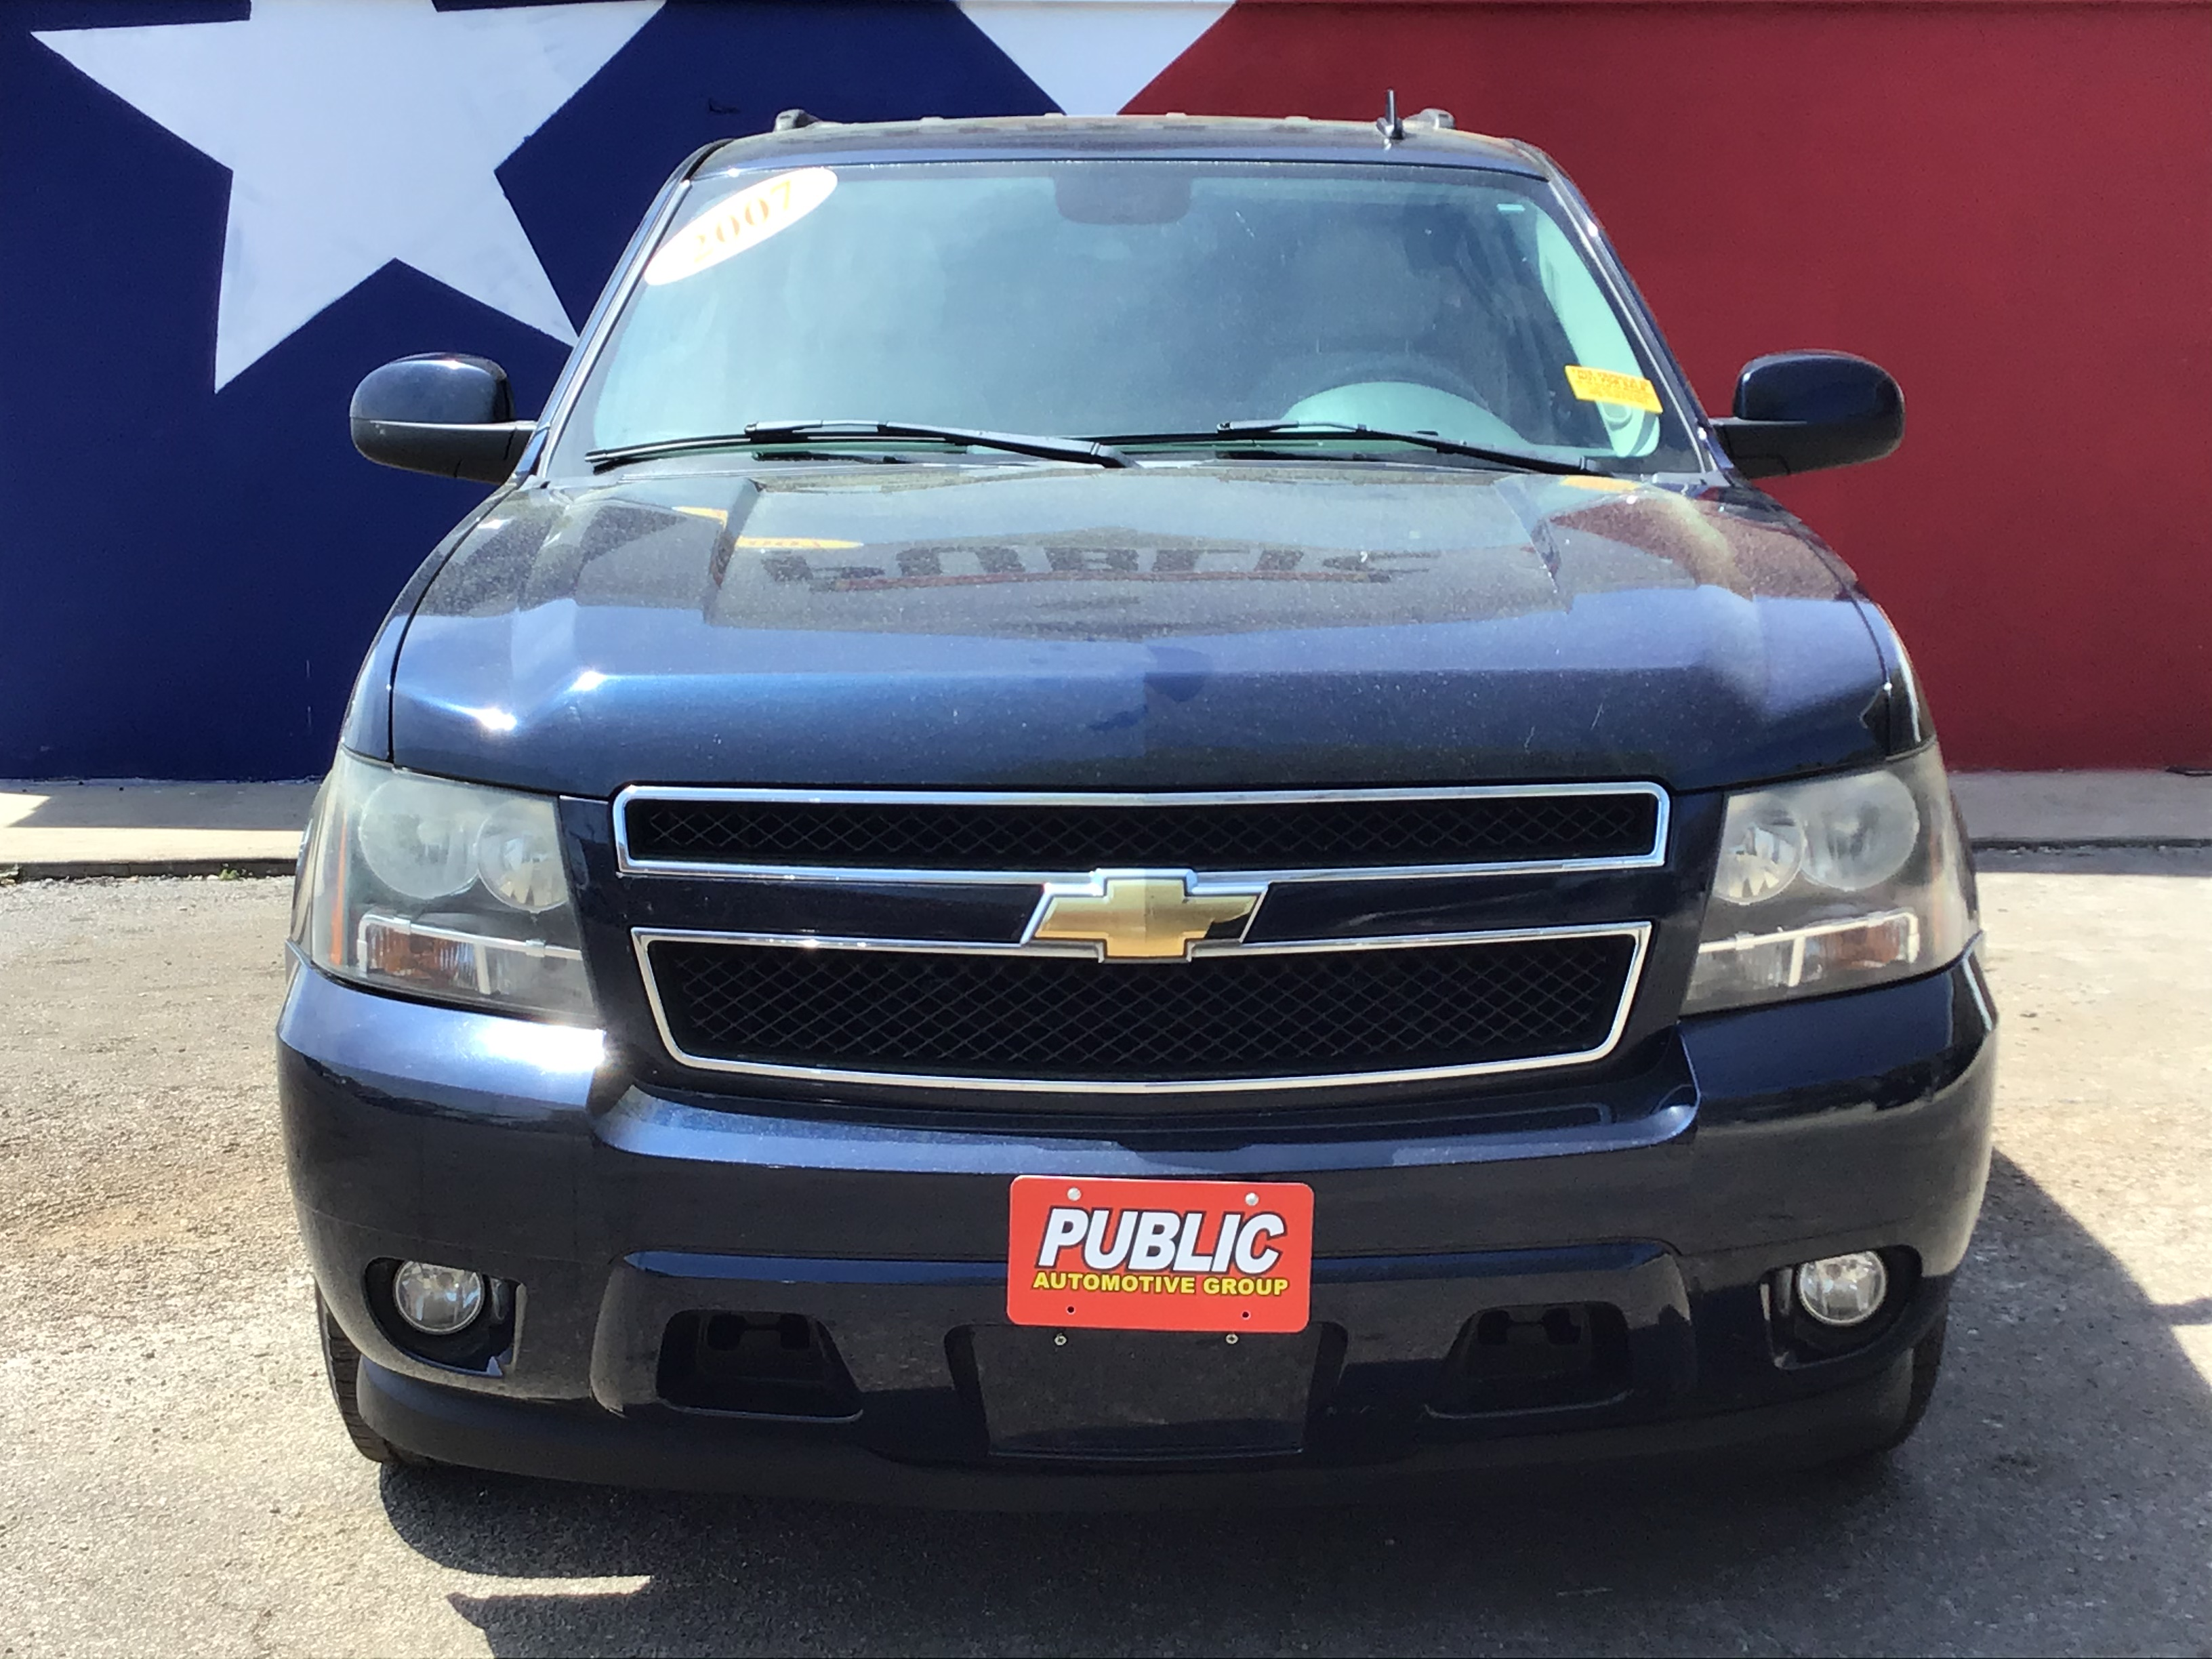 used vehicle - SUV CHEVROLET TAHOE 2007